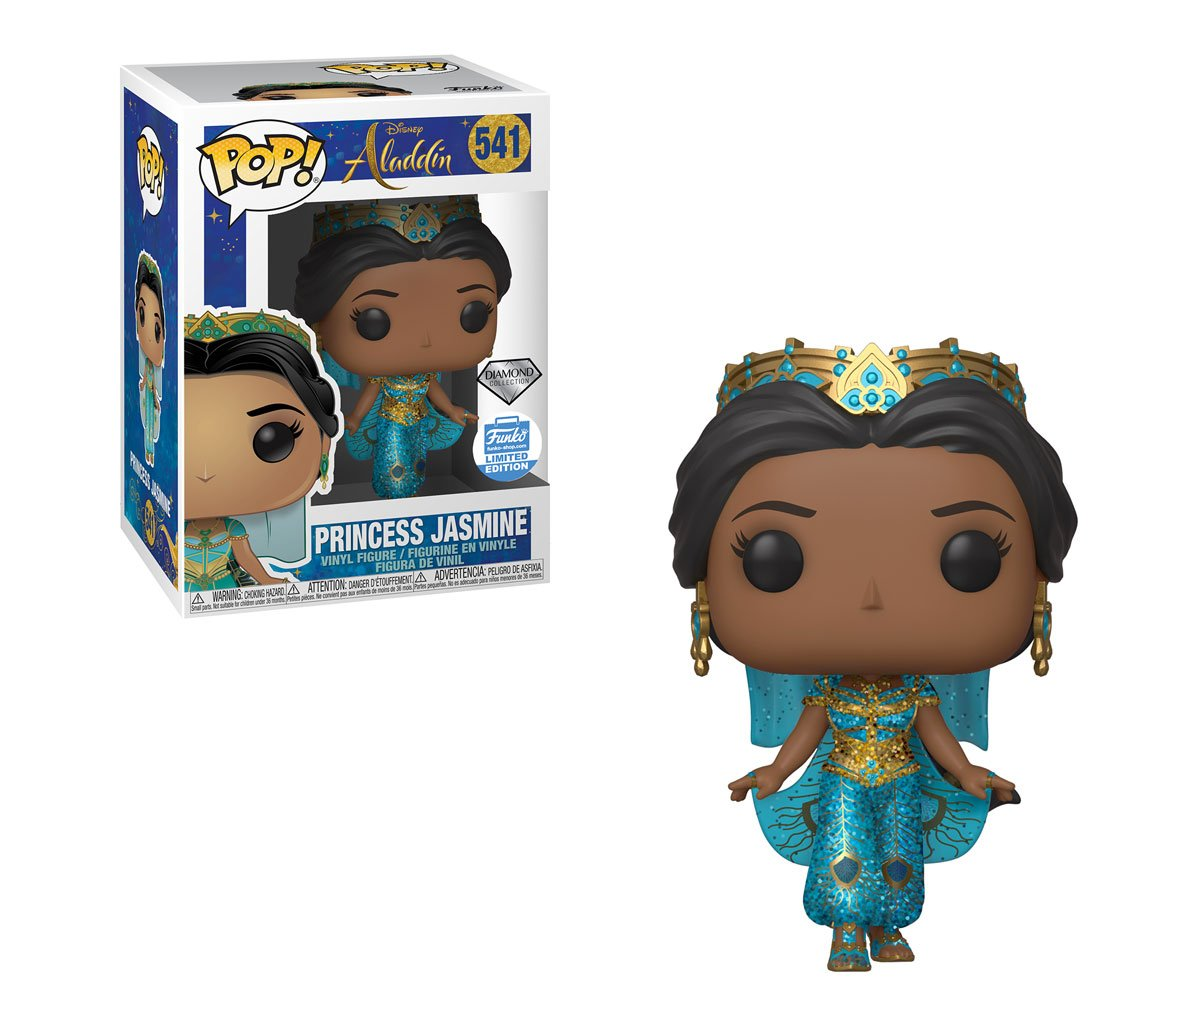 Funko's photo on #AladdinMovie